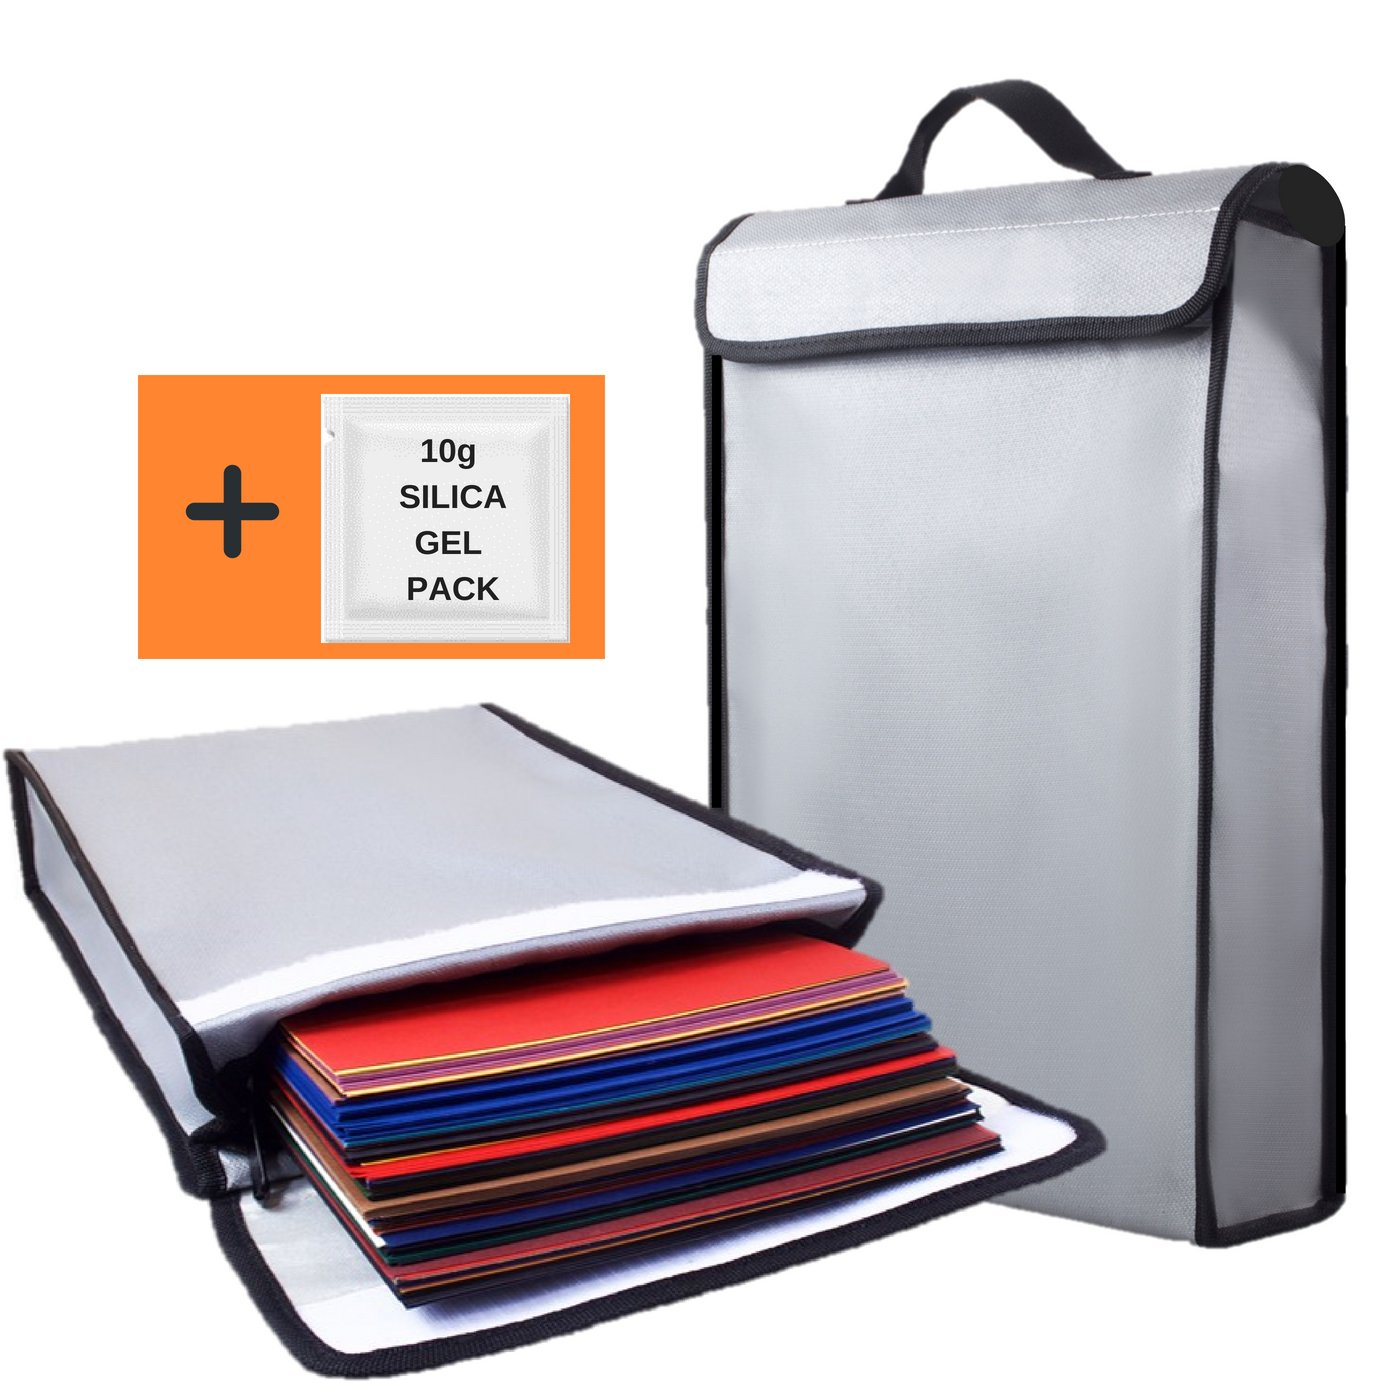 Fireproof Bag 2000°F Document Holder Waterproof Bags - Peace of Mind Security - Foldable for Fire Safe Box or Grab n Go Organizer for Money Battery Cash Legal Passport (15'' x 11'' x 3'')